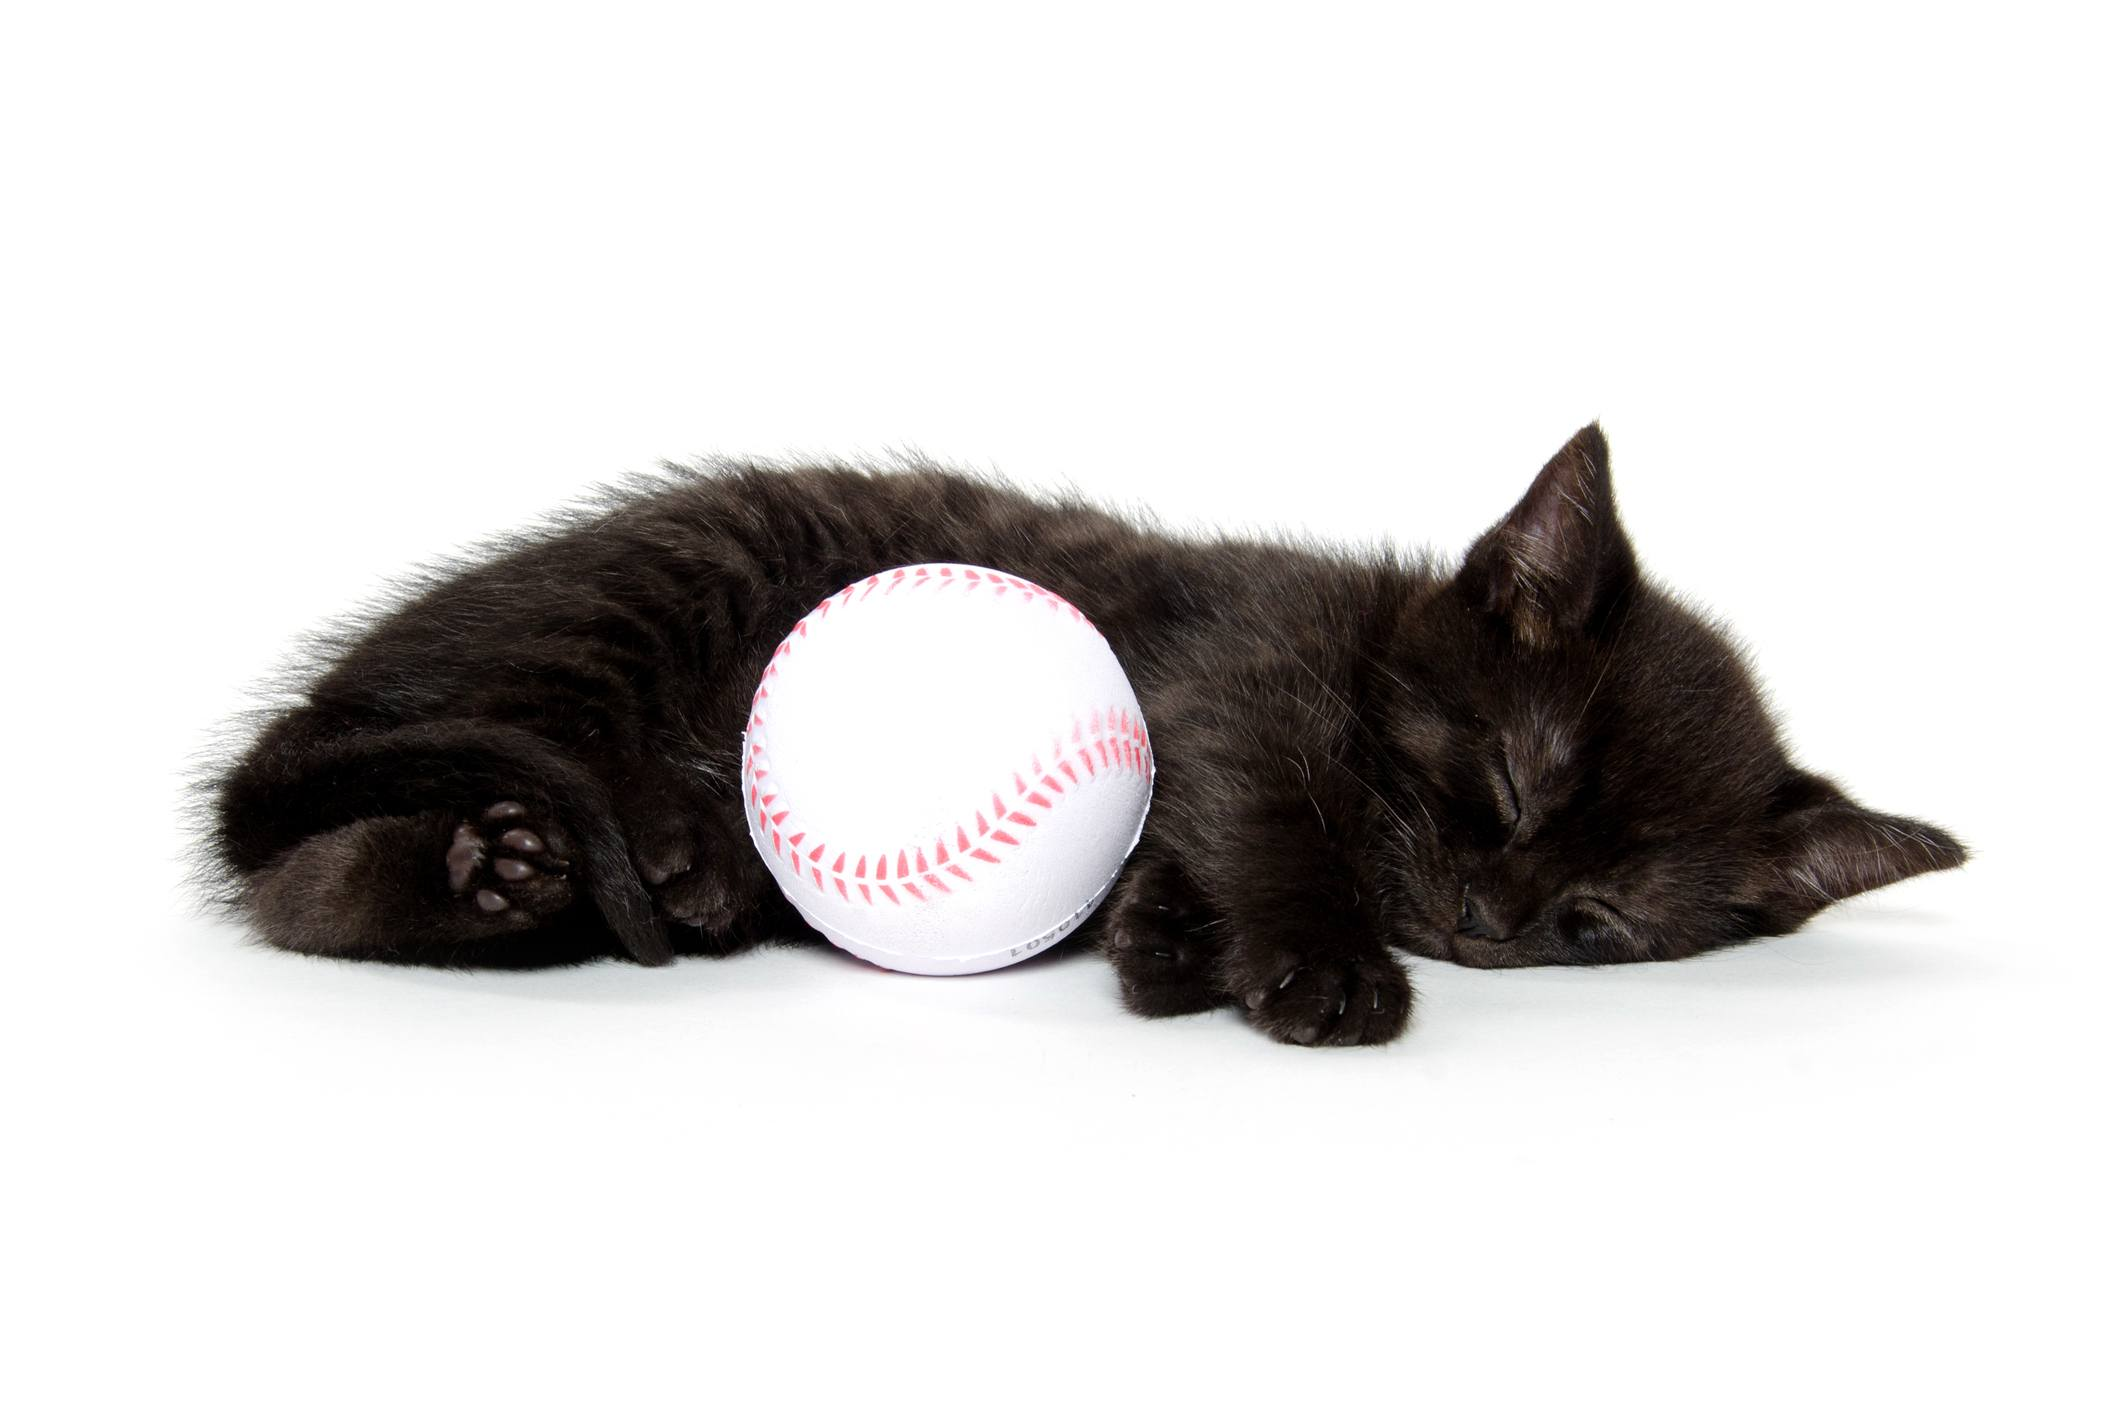 American shorthair black kitten sleeping with baseball